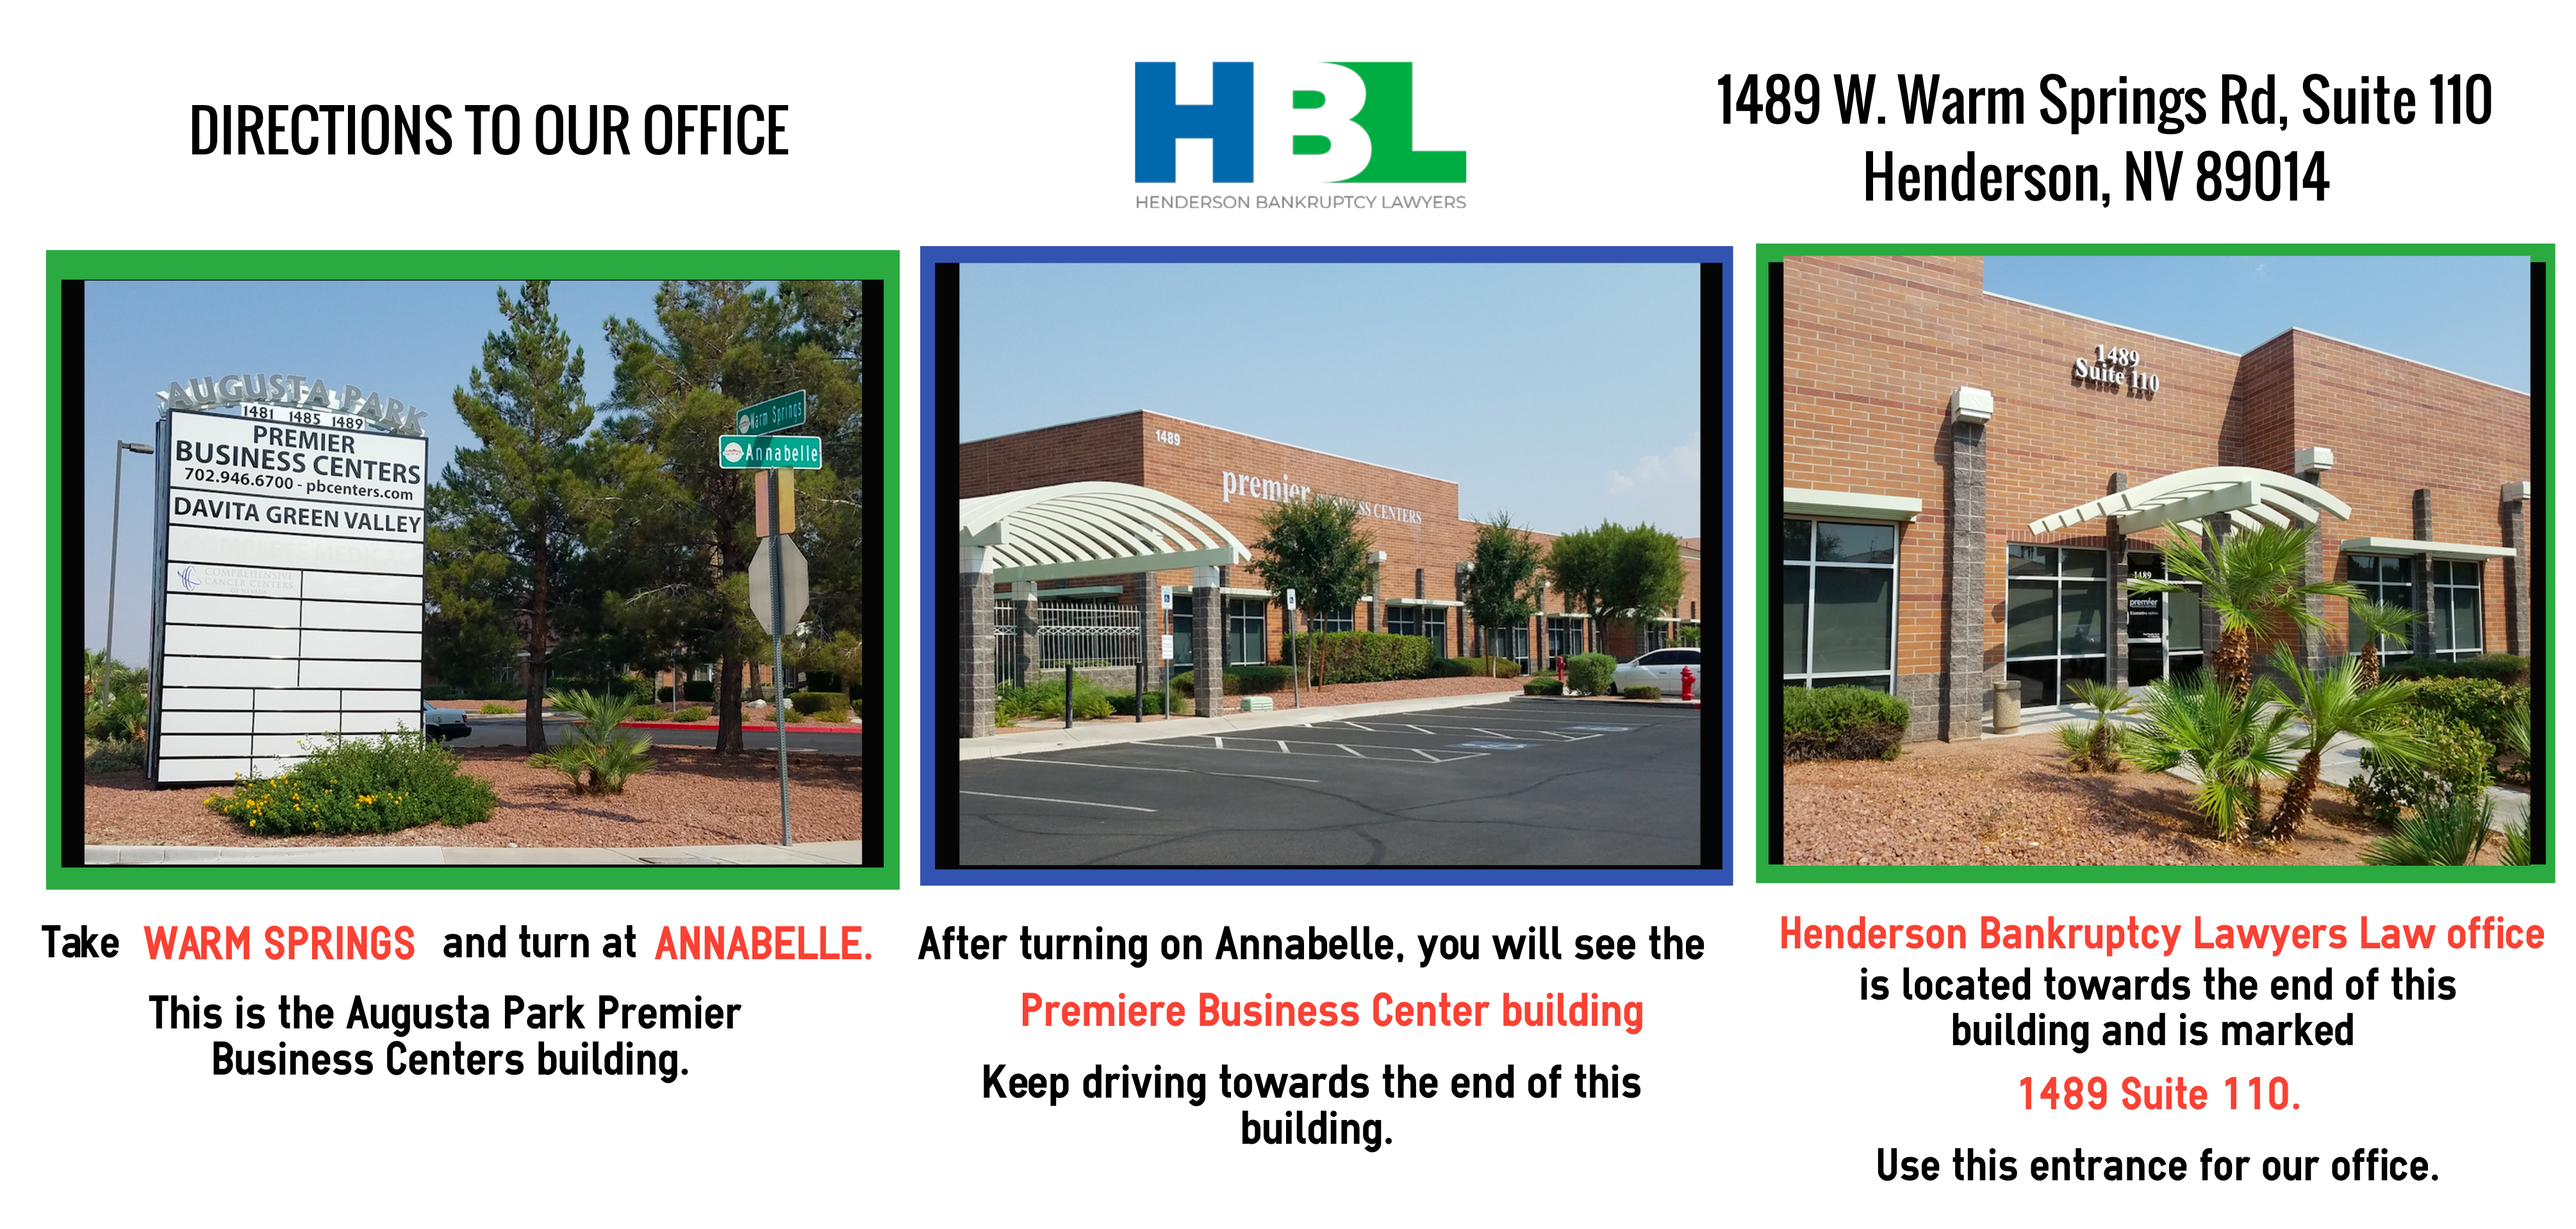 infographic: directions to the Henderson Bankruptcy Lawyers office